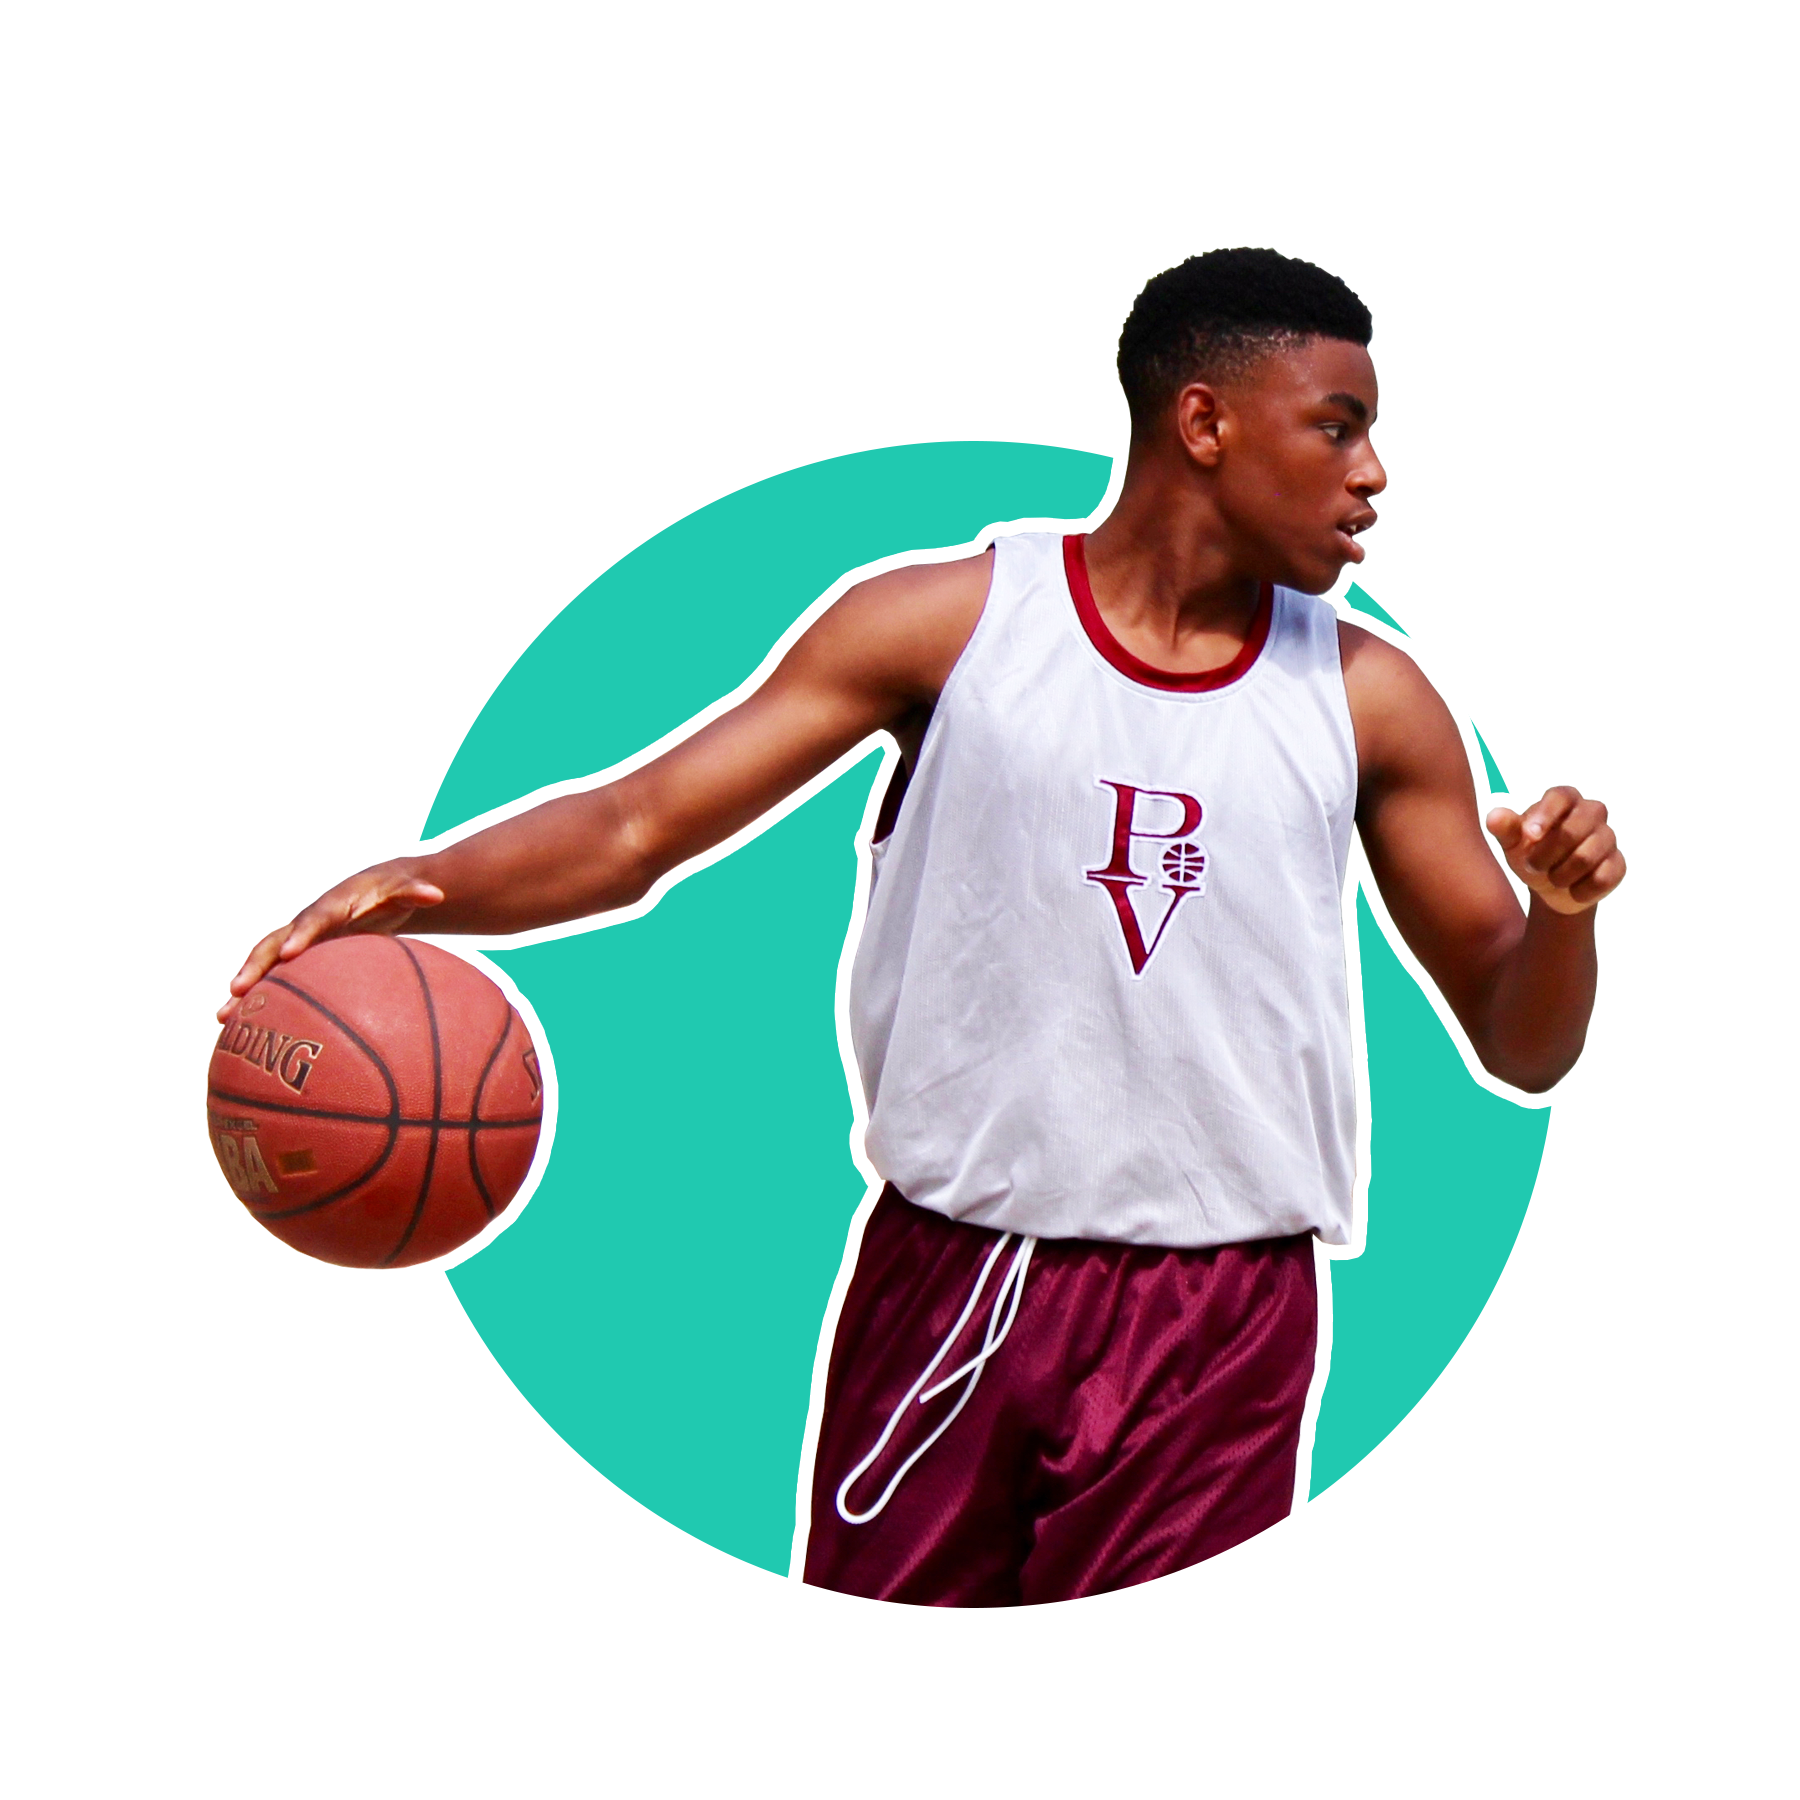 SCTC website custom graphics - basketball boy.png